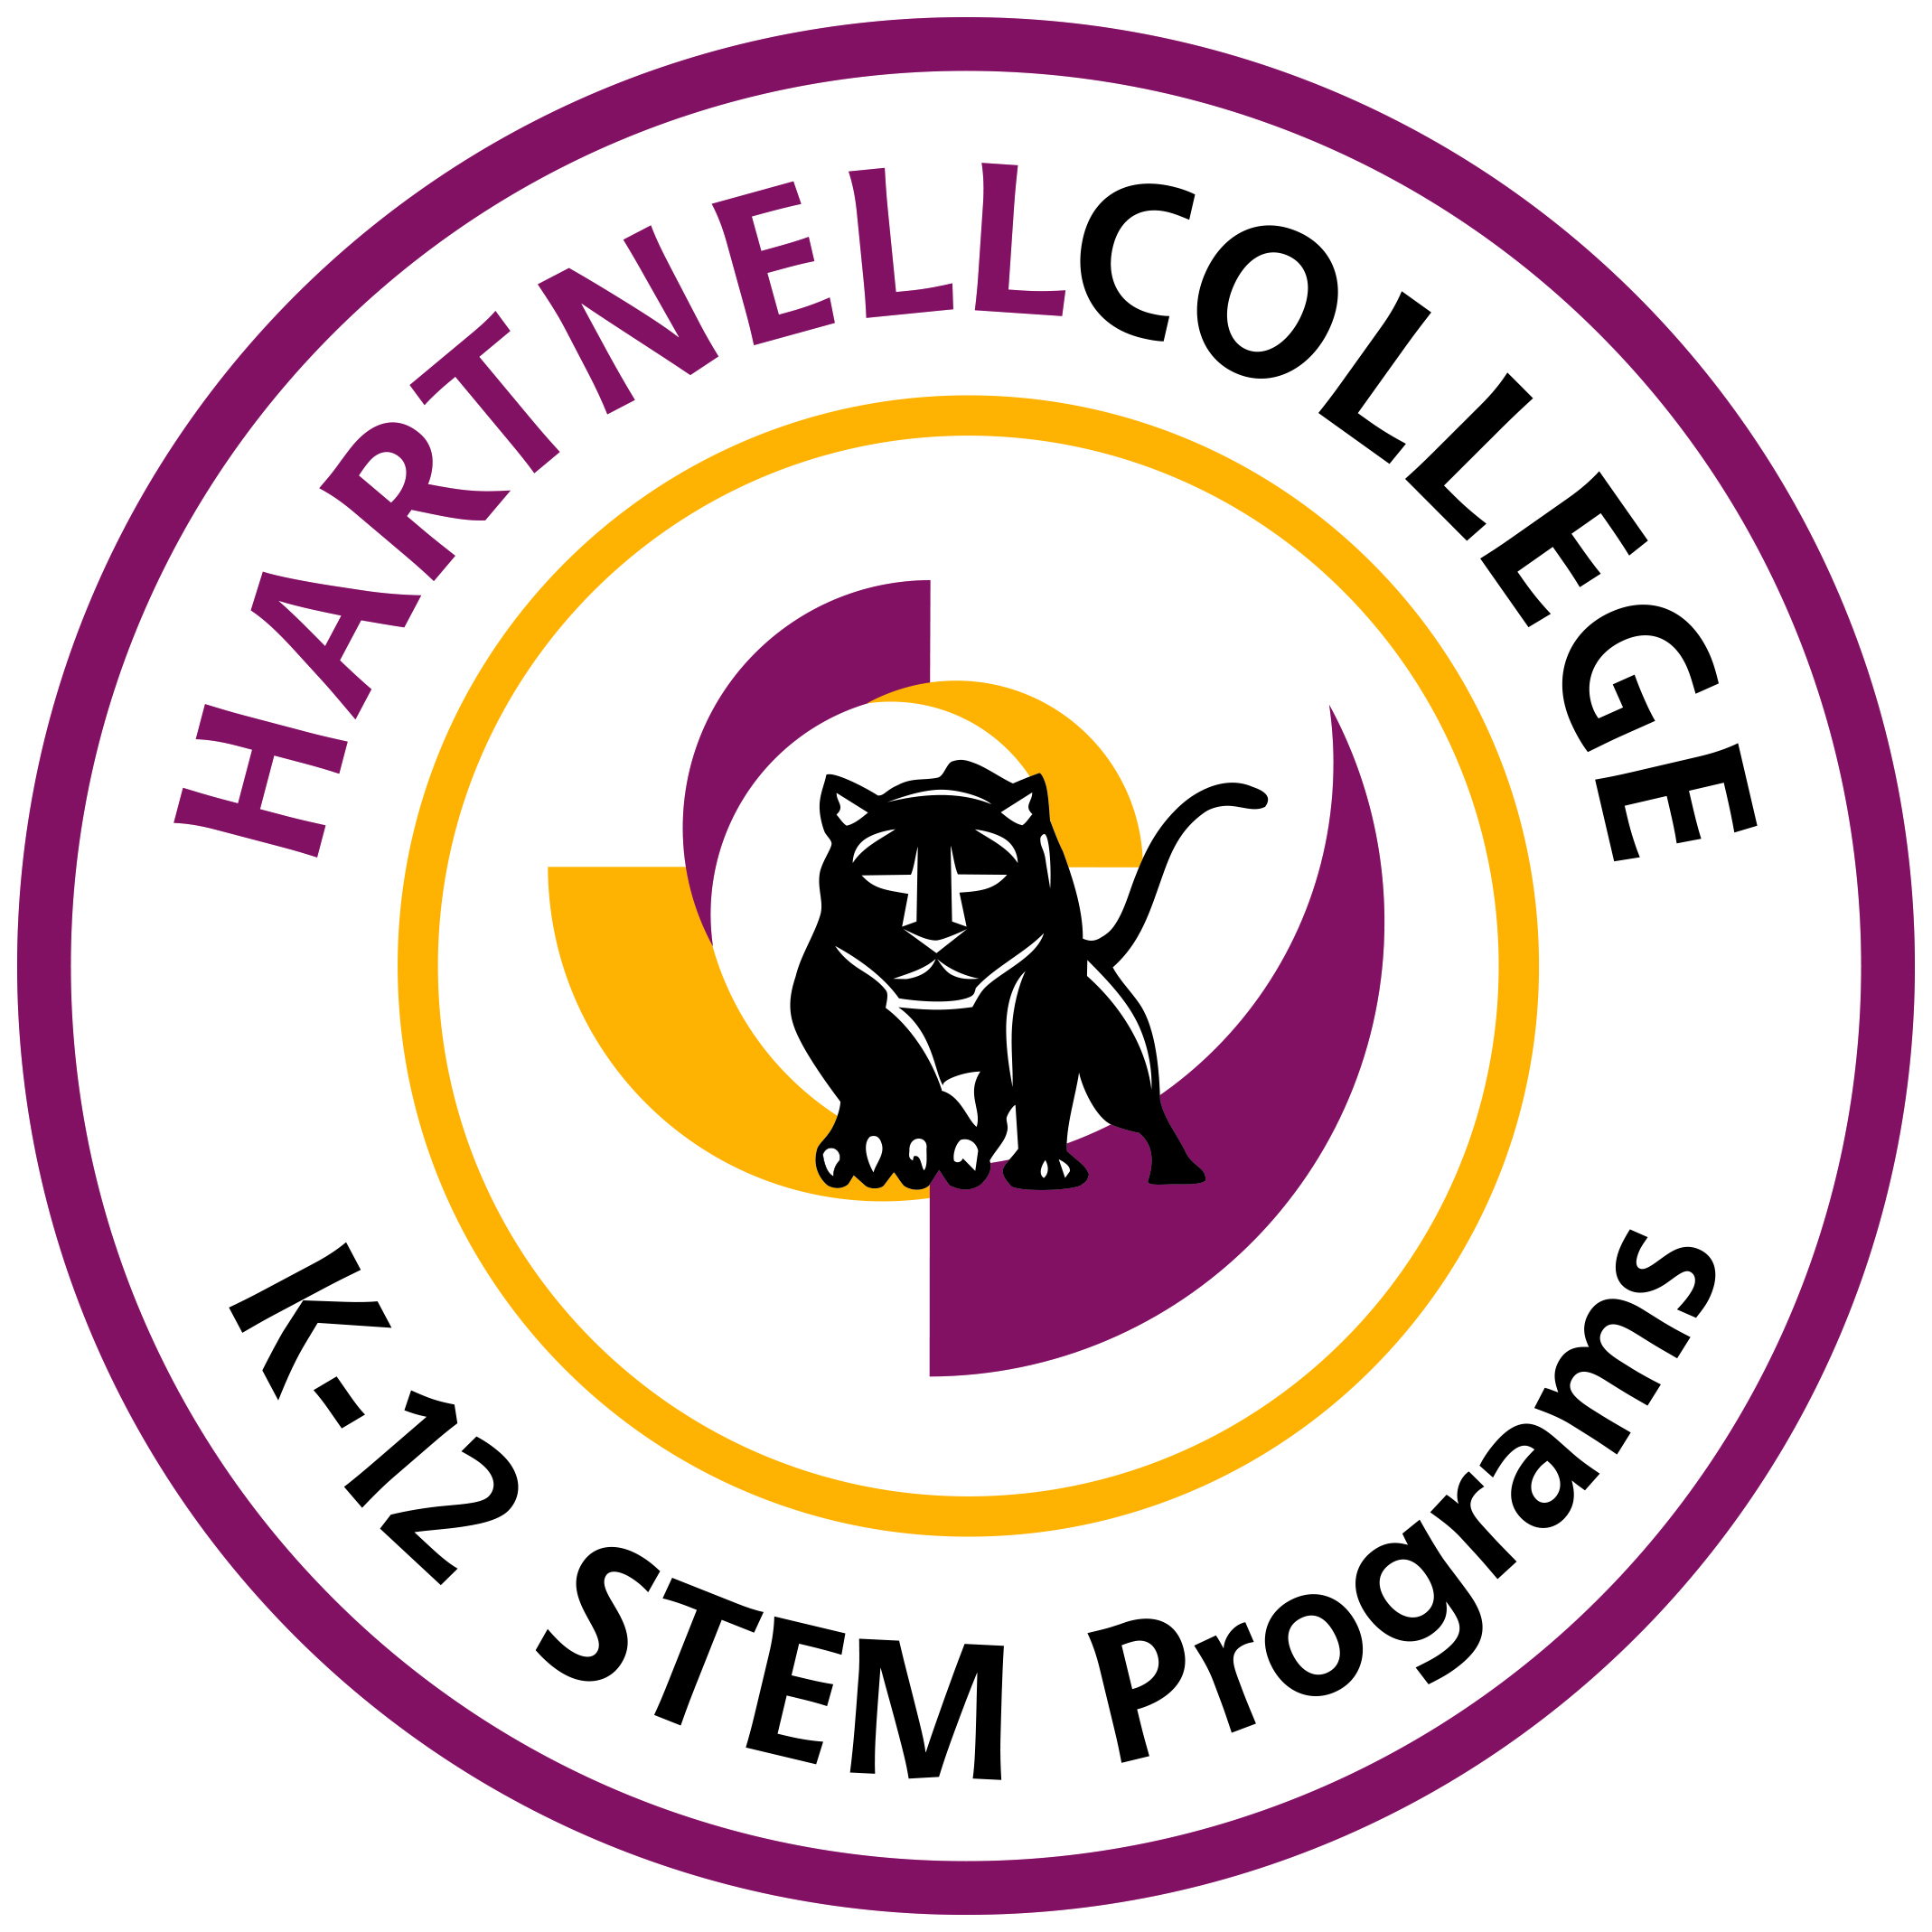 Hartnell K12 STEM Programs Logo